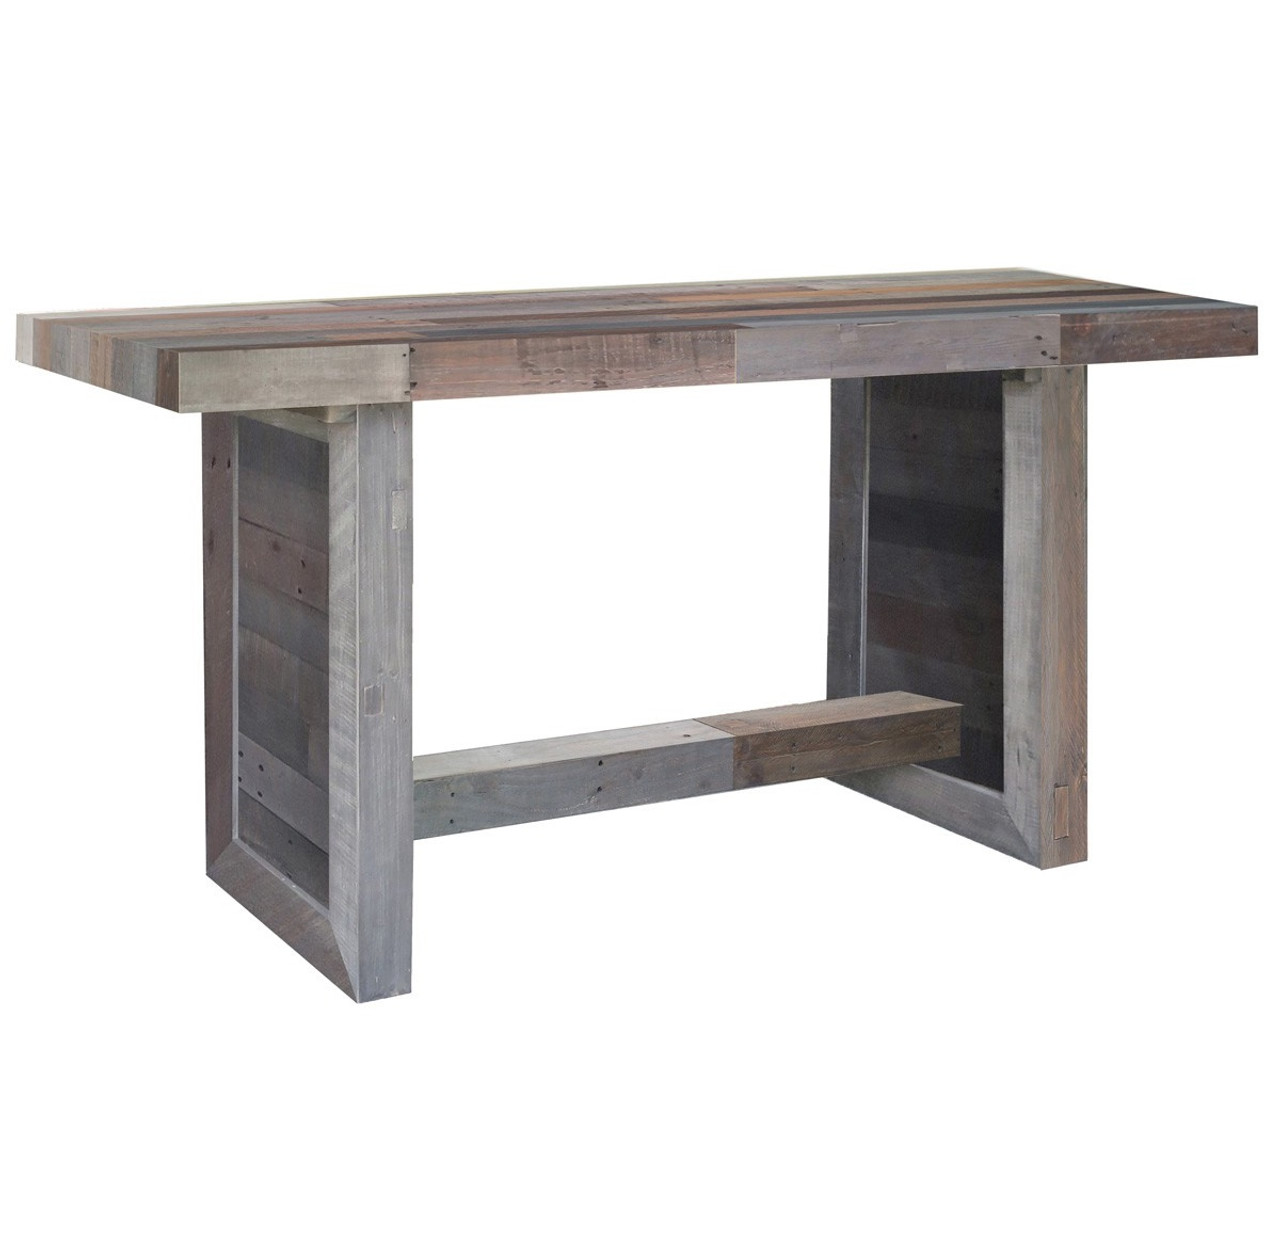 Dining Room Table Expandable Angora Reclaimed Wood Counter Height Kitchen Table Zin Home